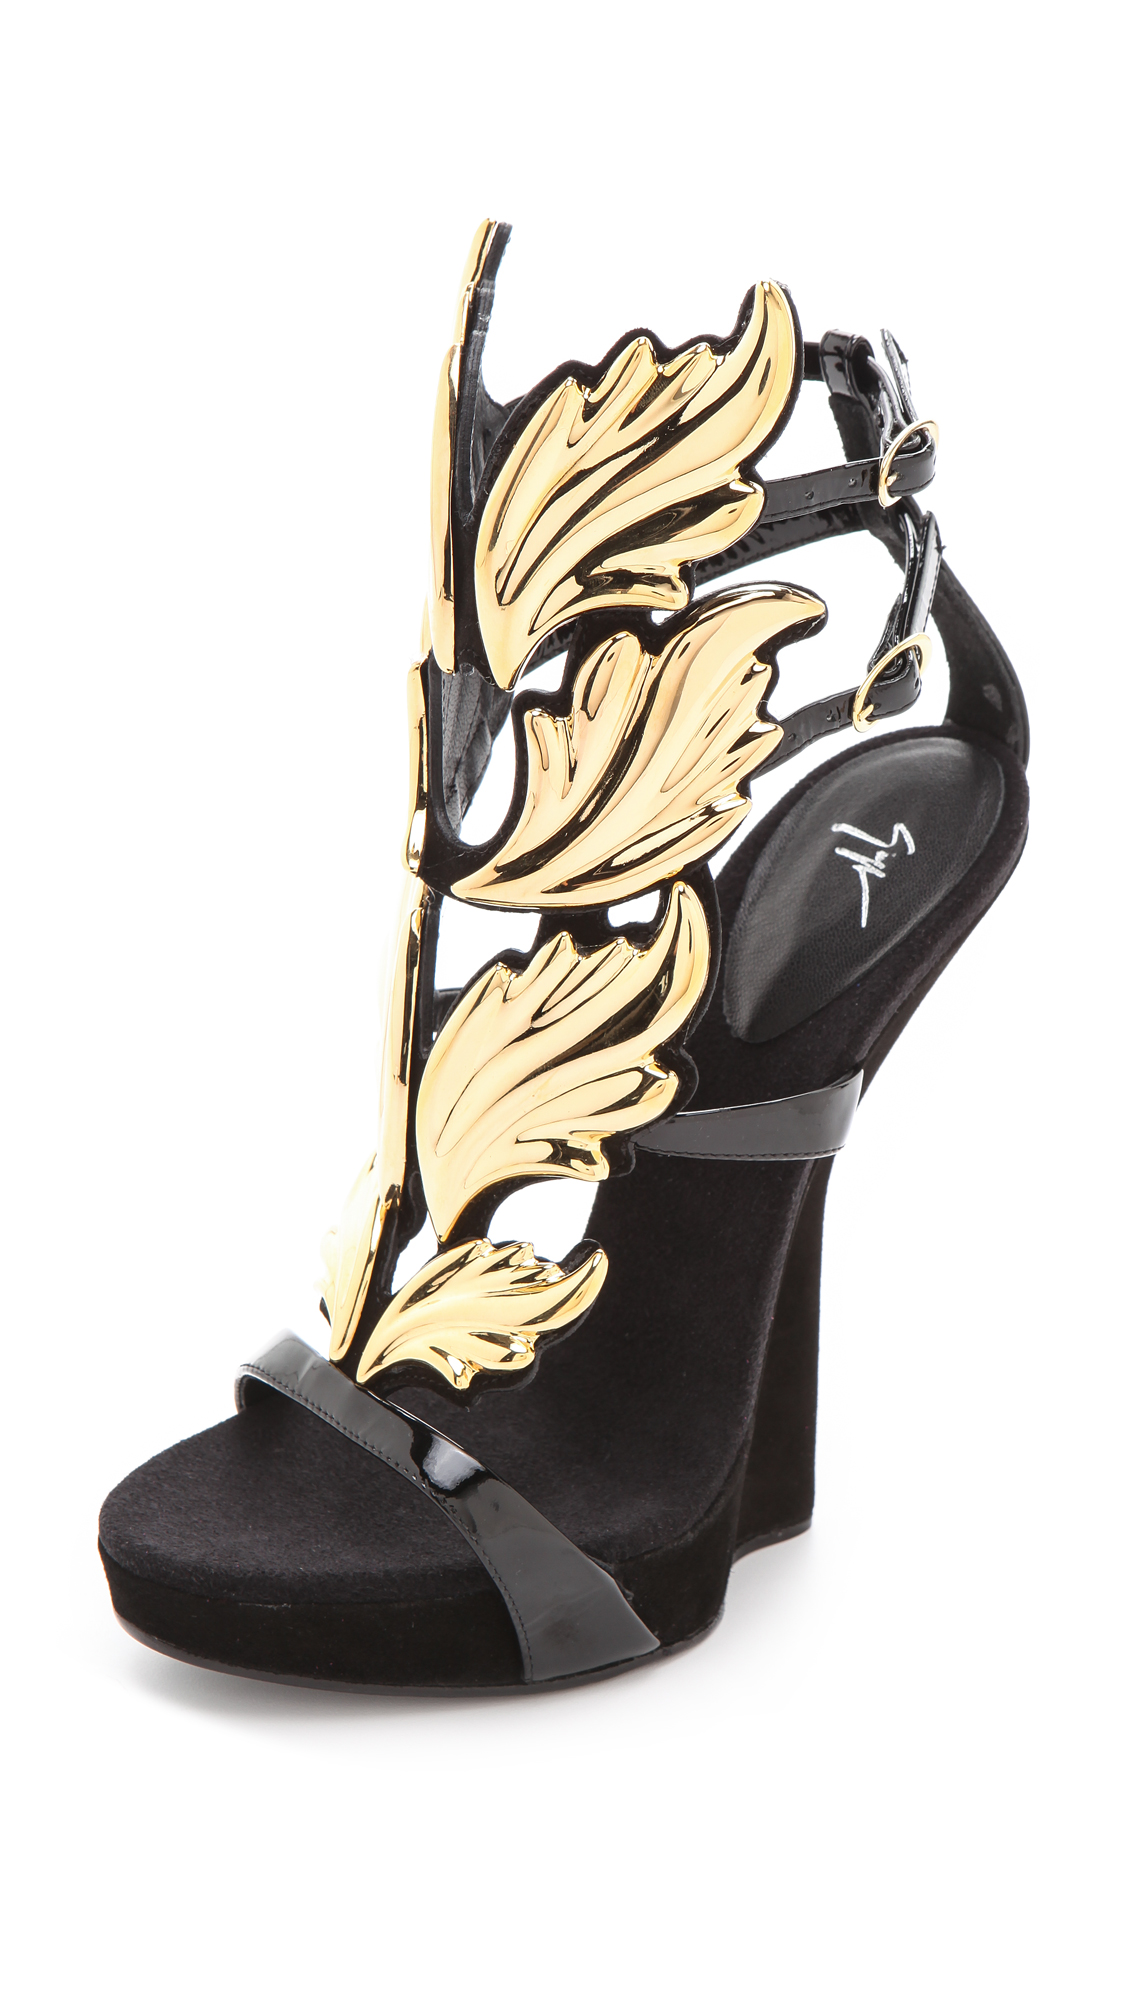 Flat Black Shoes With Gold Heels